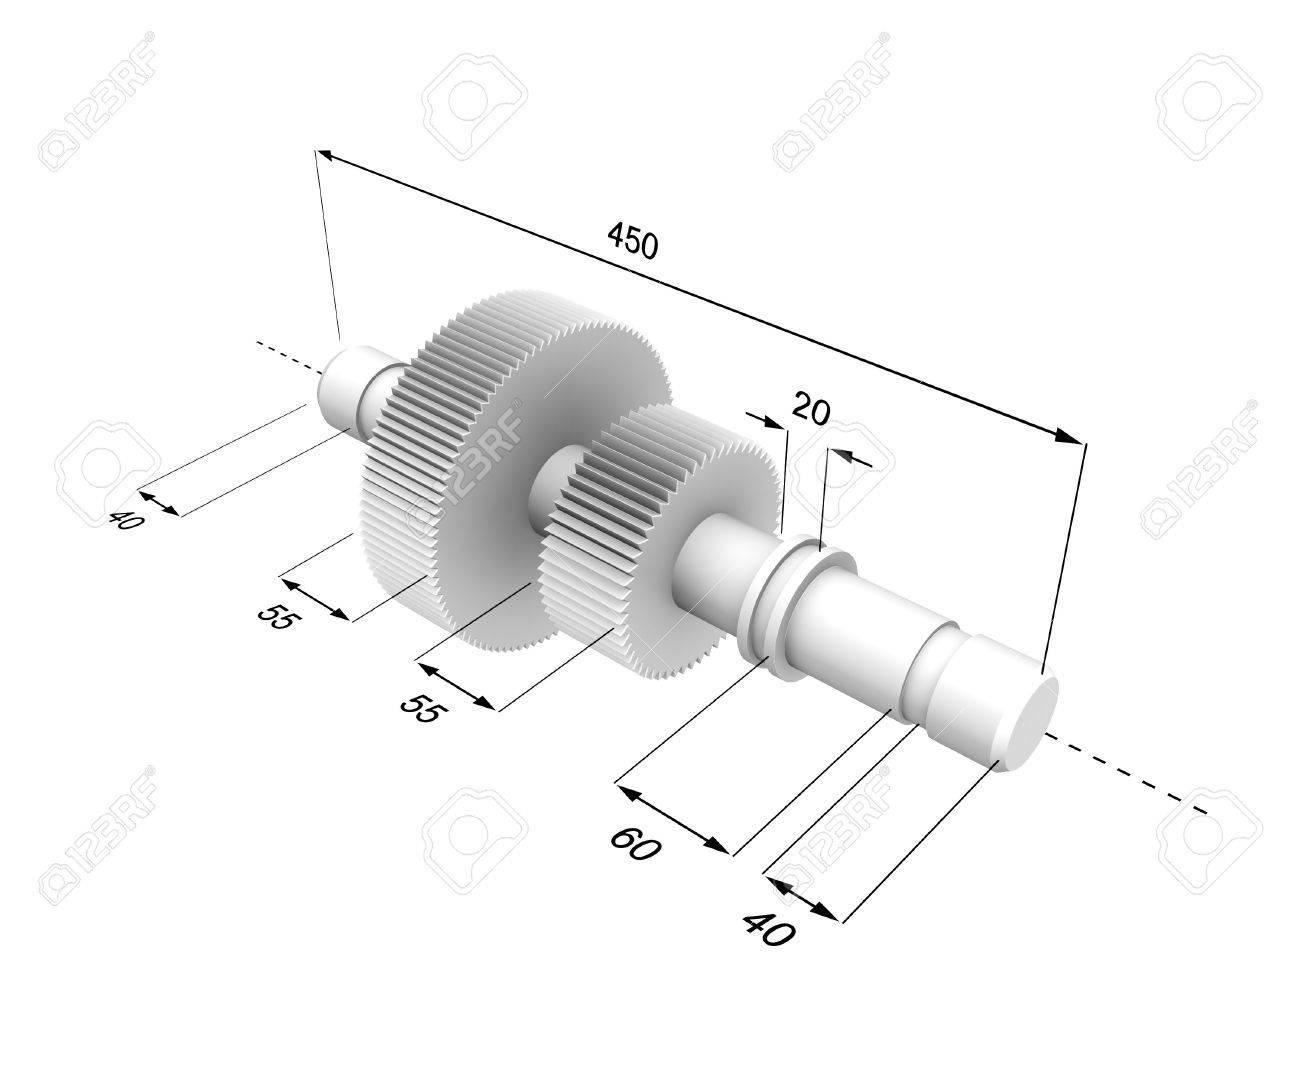 Three-dimensional model of a metal detail with the designated sizes. - 7744332